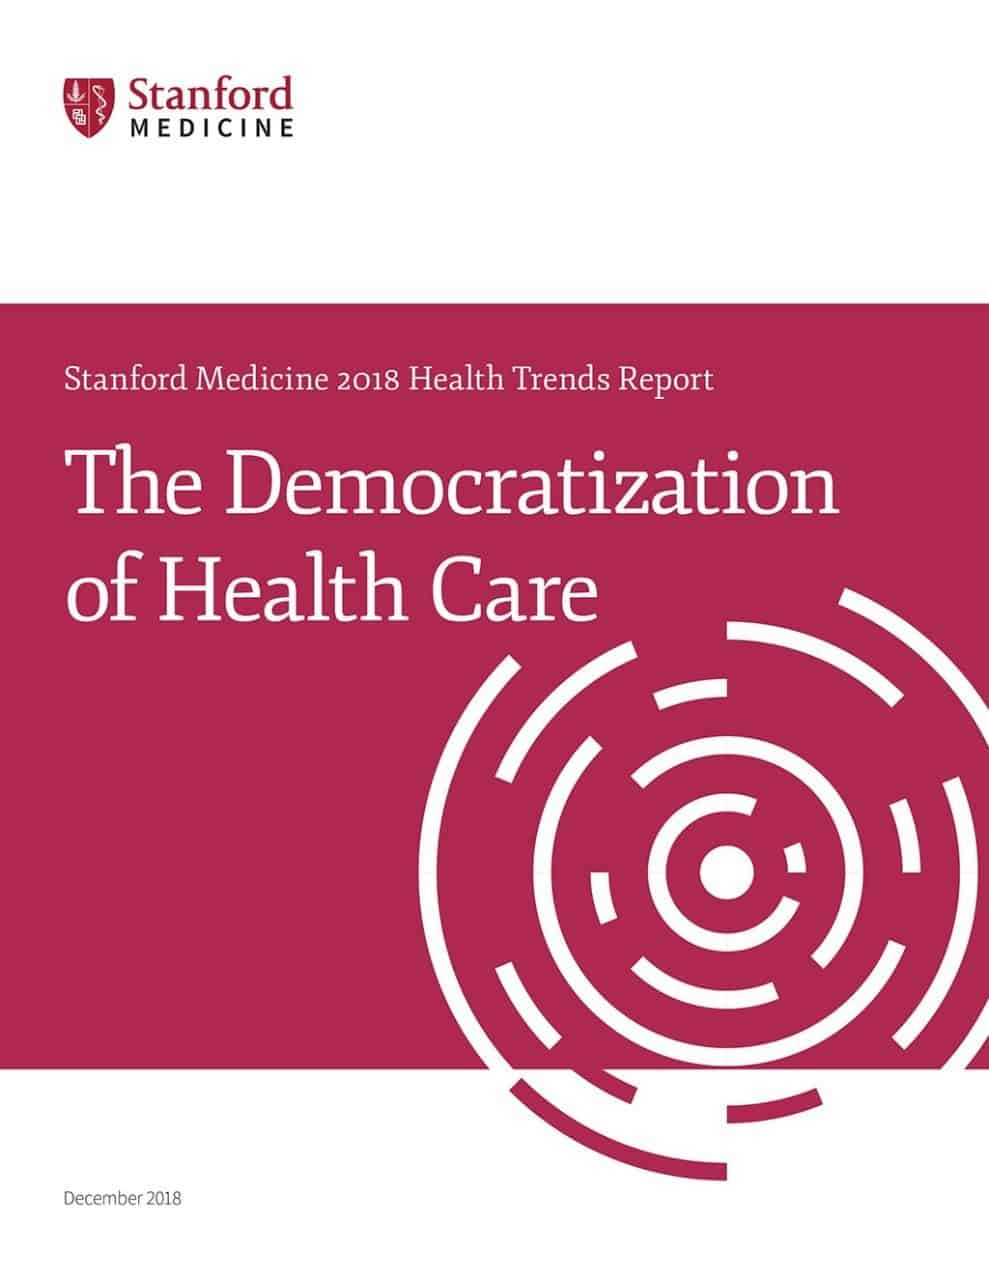 stanford med health report democratization of healthcare